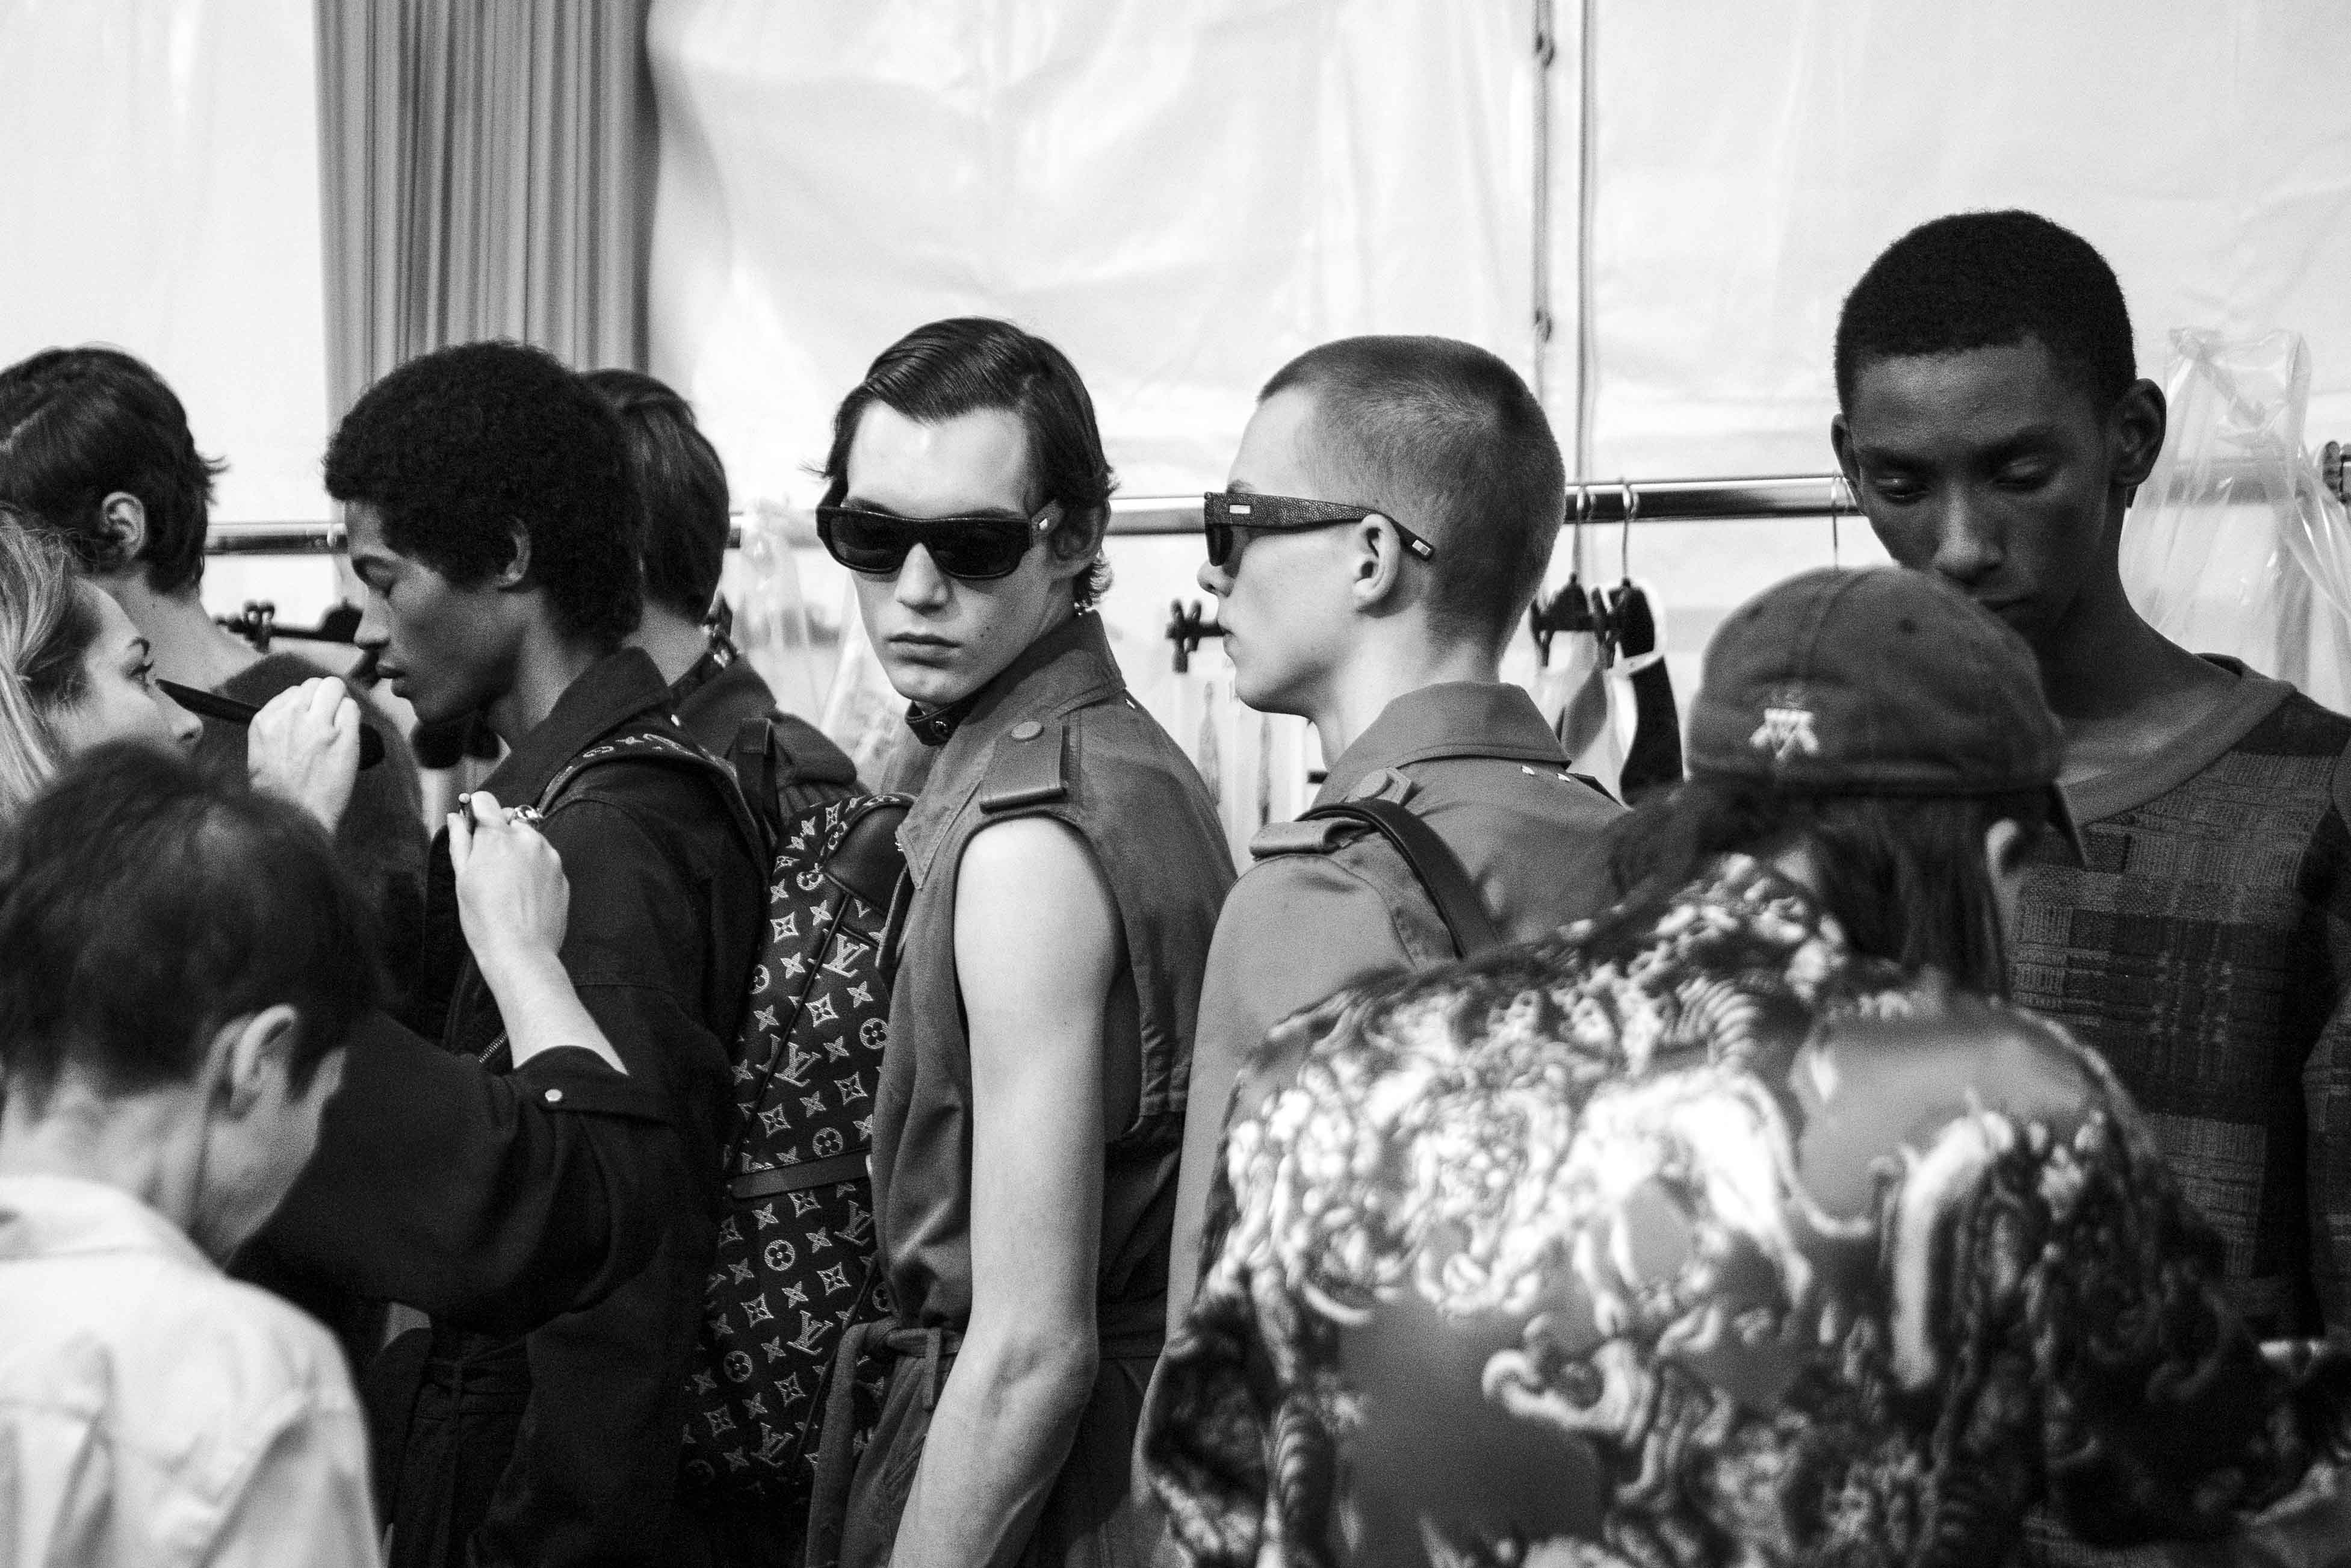 Backstage: Louis Vuitton spring-summer 2017 fashion show for men